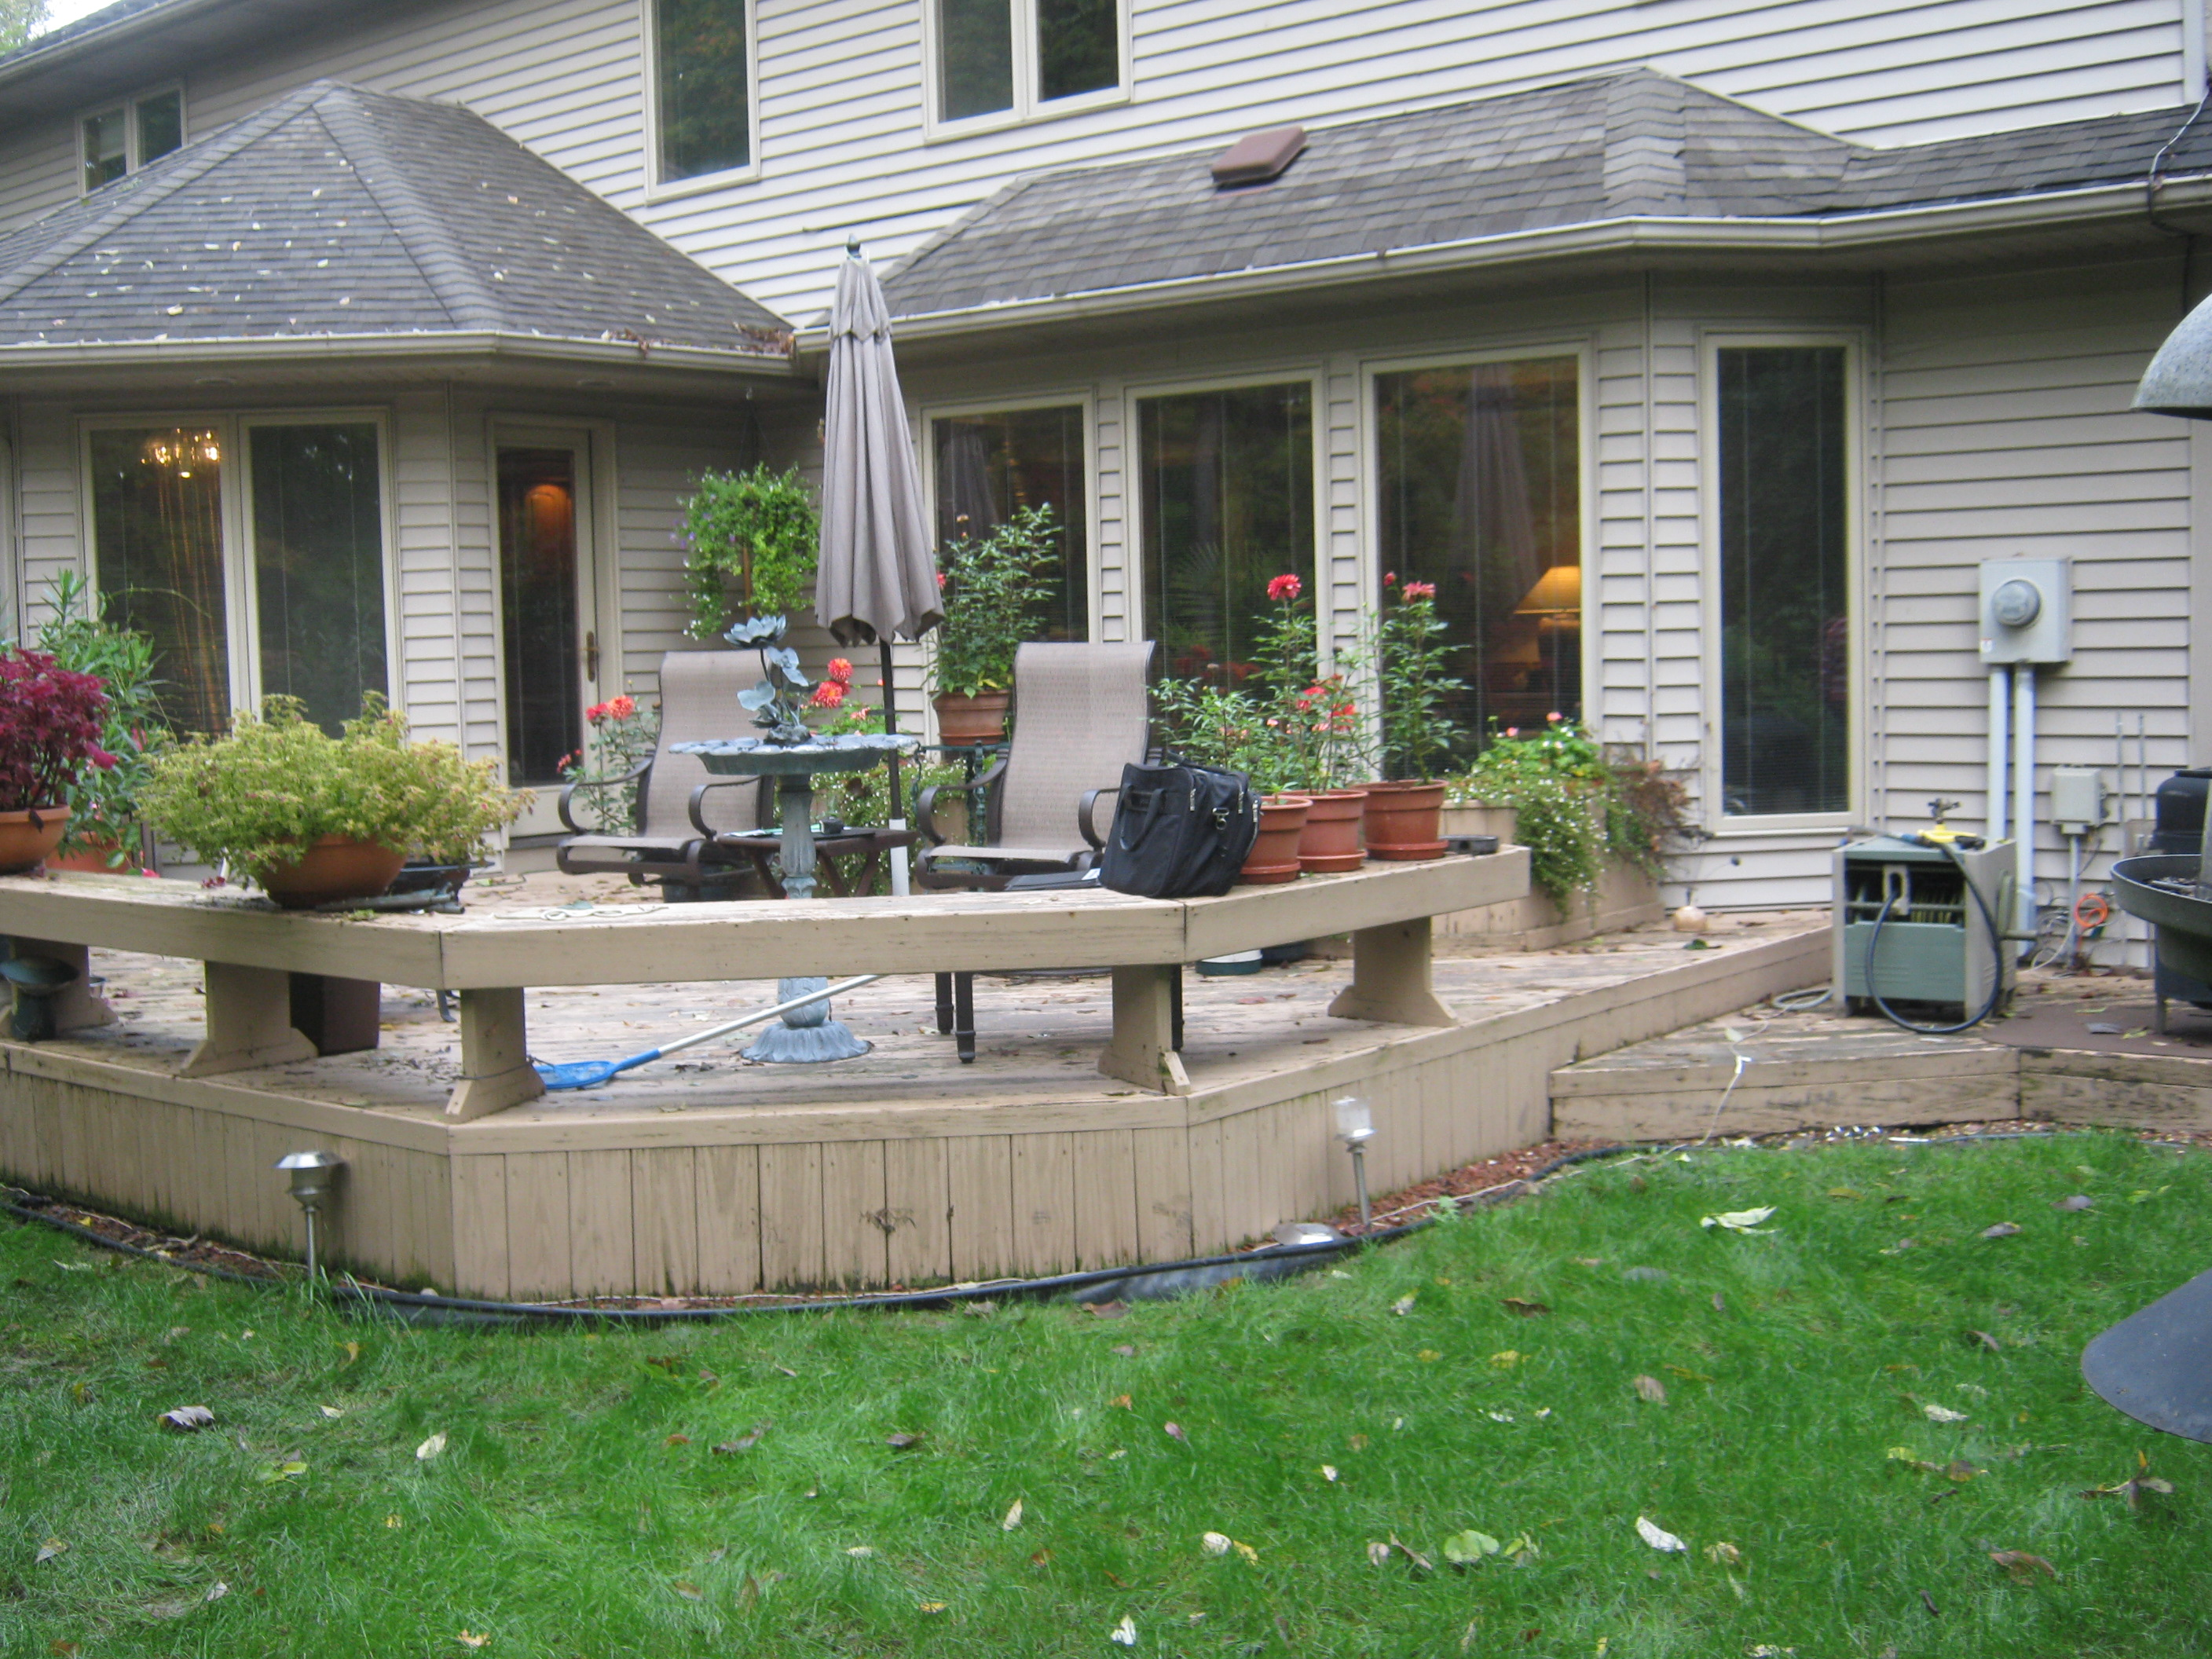 DIY Build Wood Deck Over Concrete Patio Wooden PDF Dining Room Table Top  Plans « Marvelous43ptw